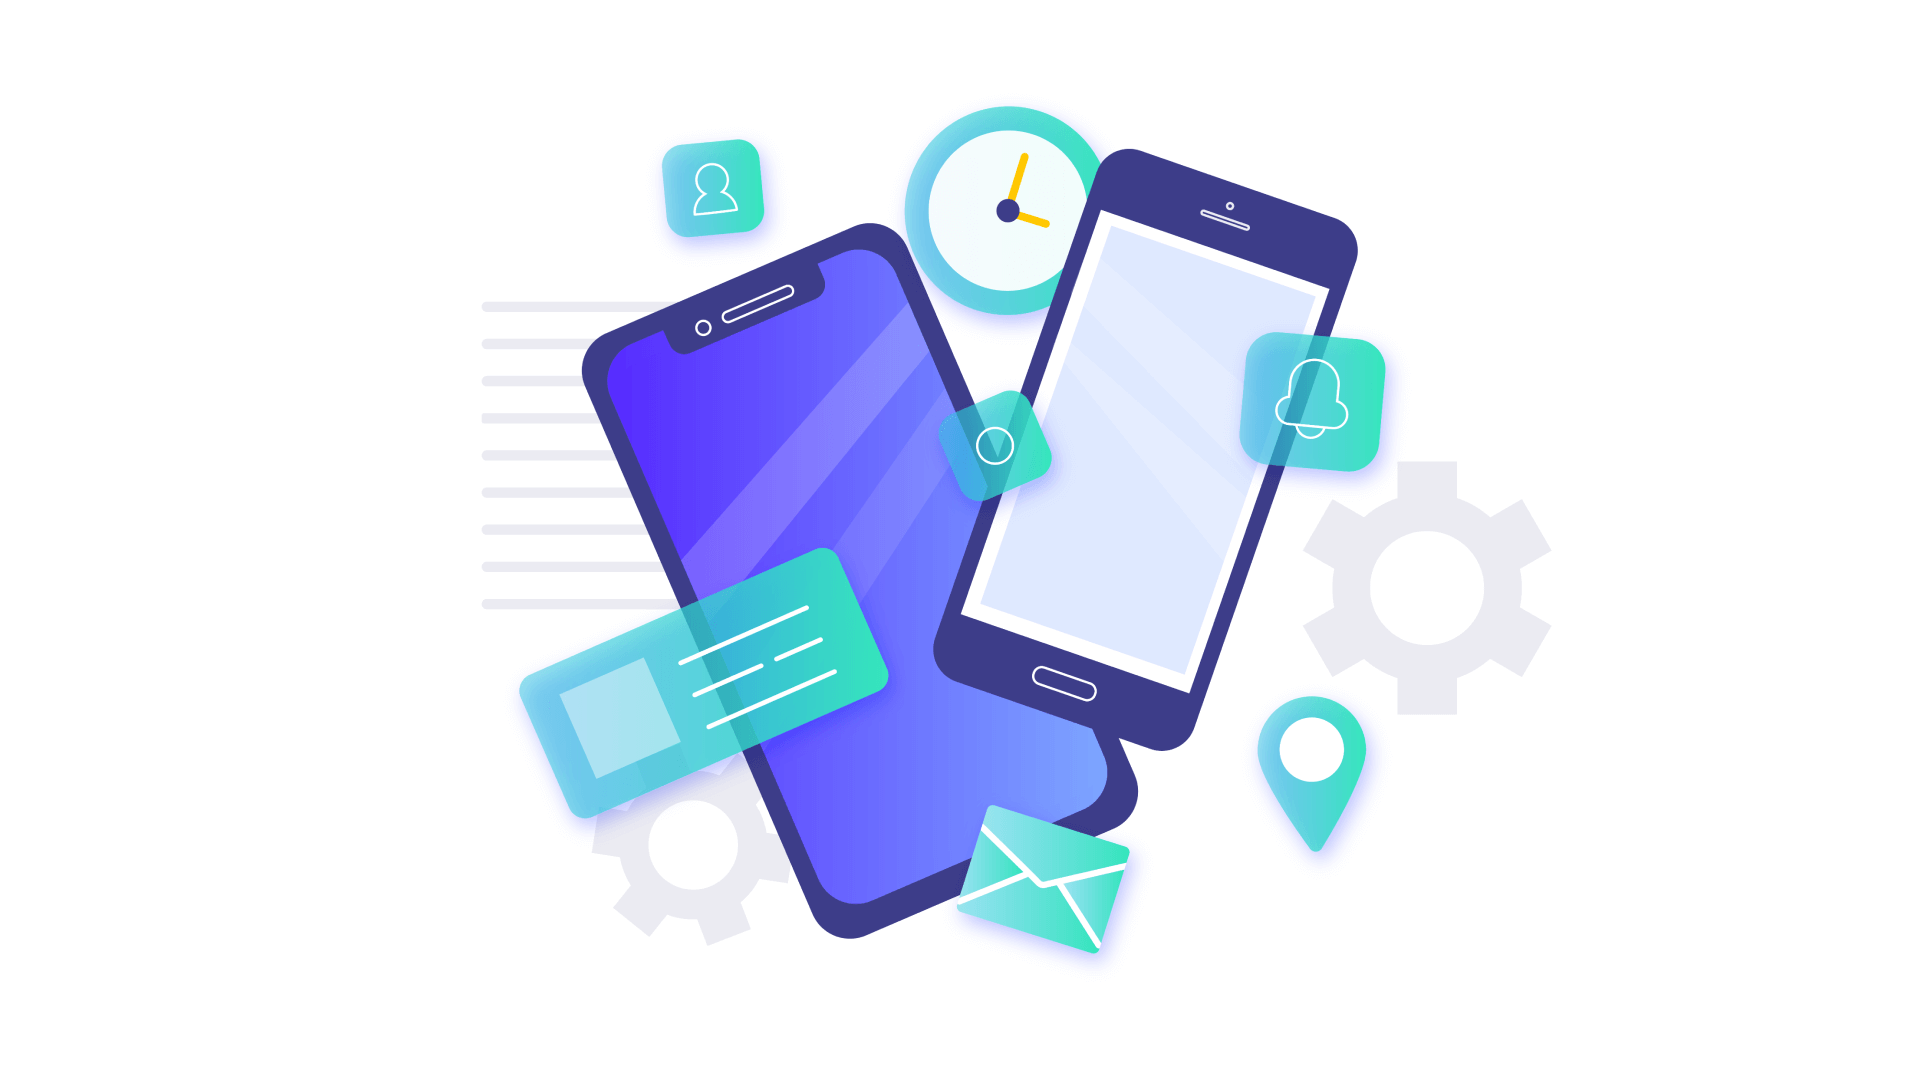 Nowadays, you can see a wide range of different DApp cases, and potentially any industry can be decentralized.